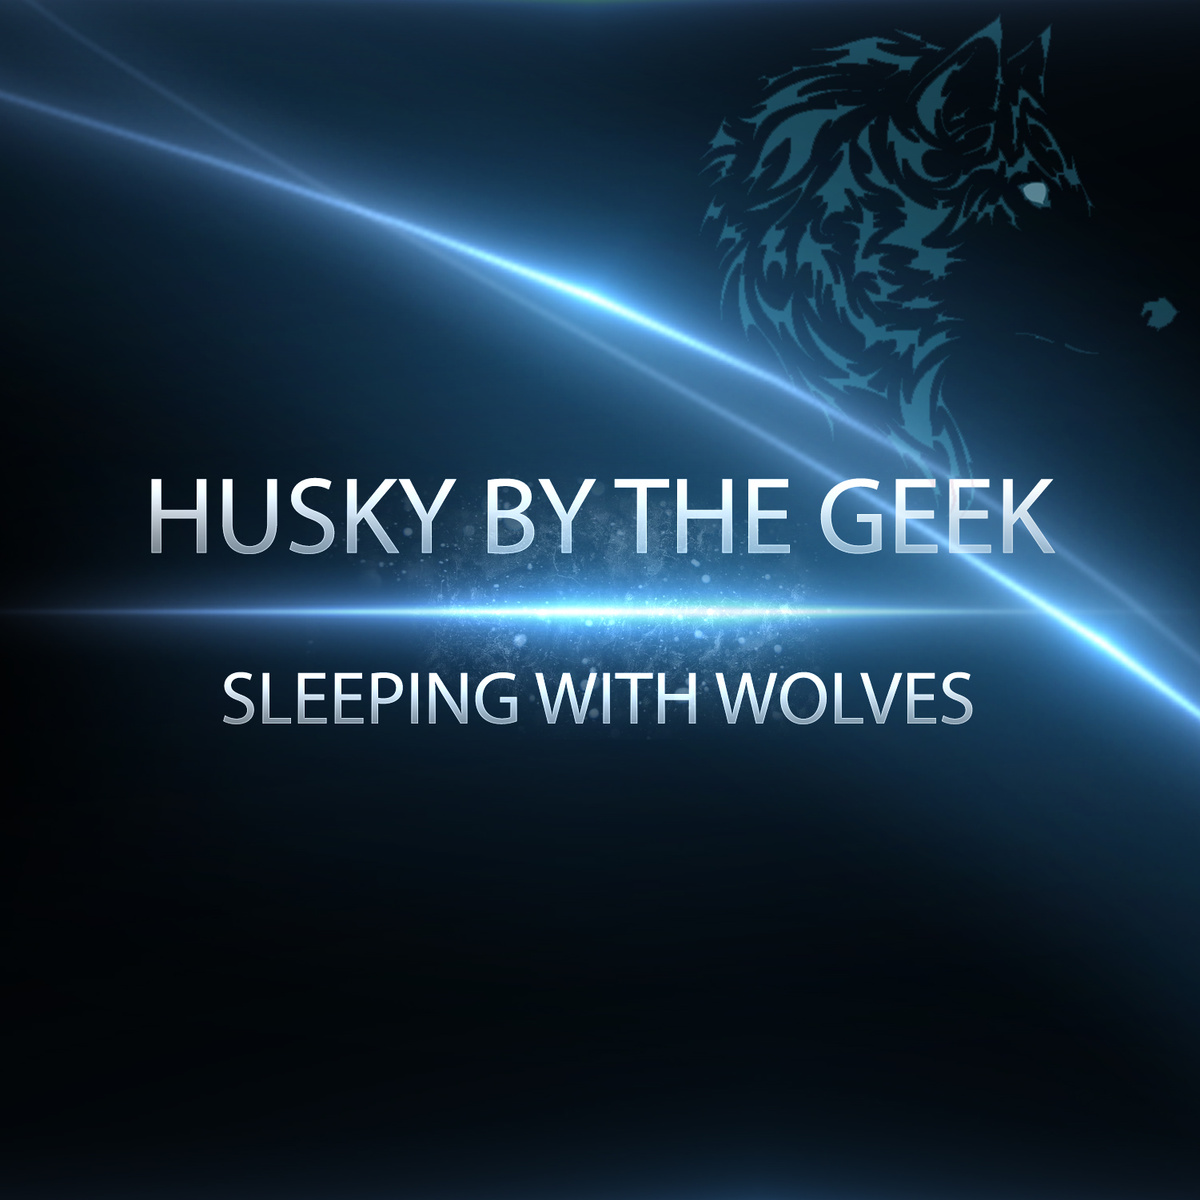 Husky By The Geek - Sleeping With Wolves